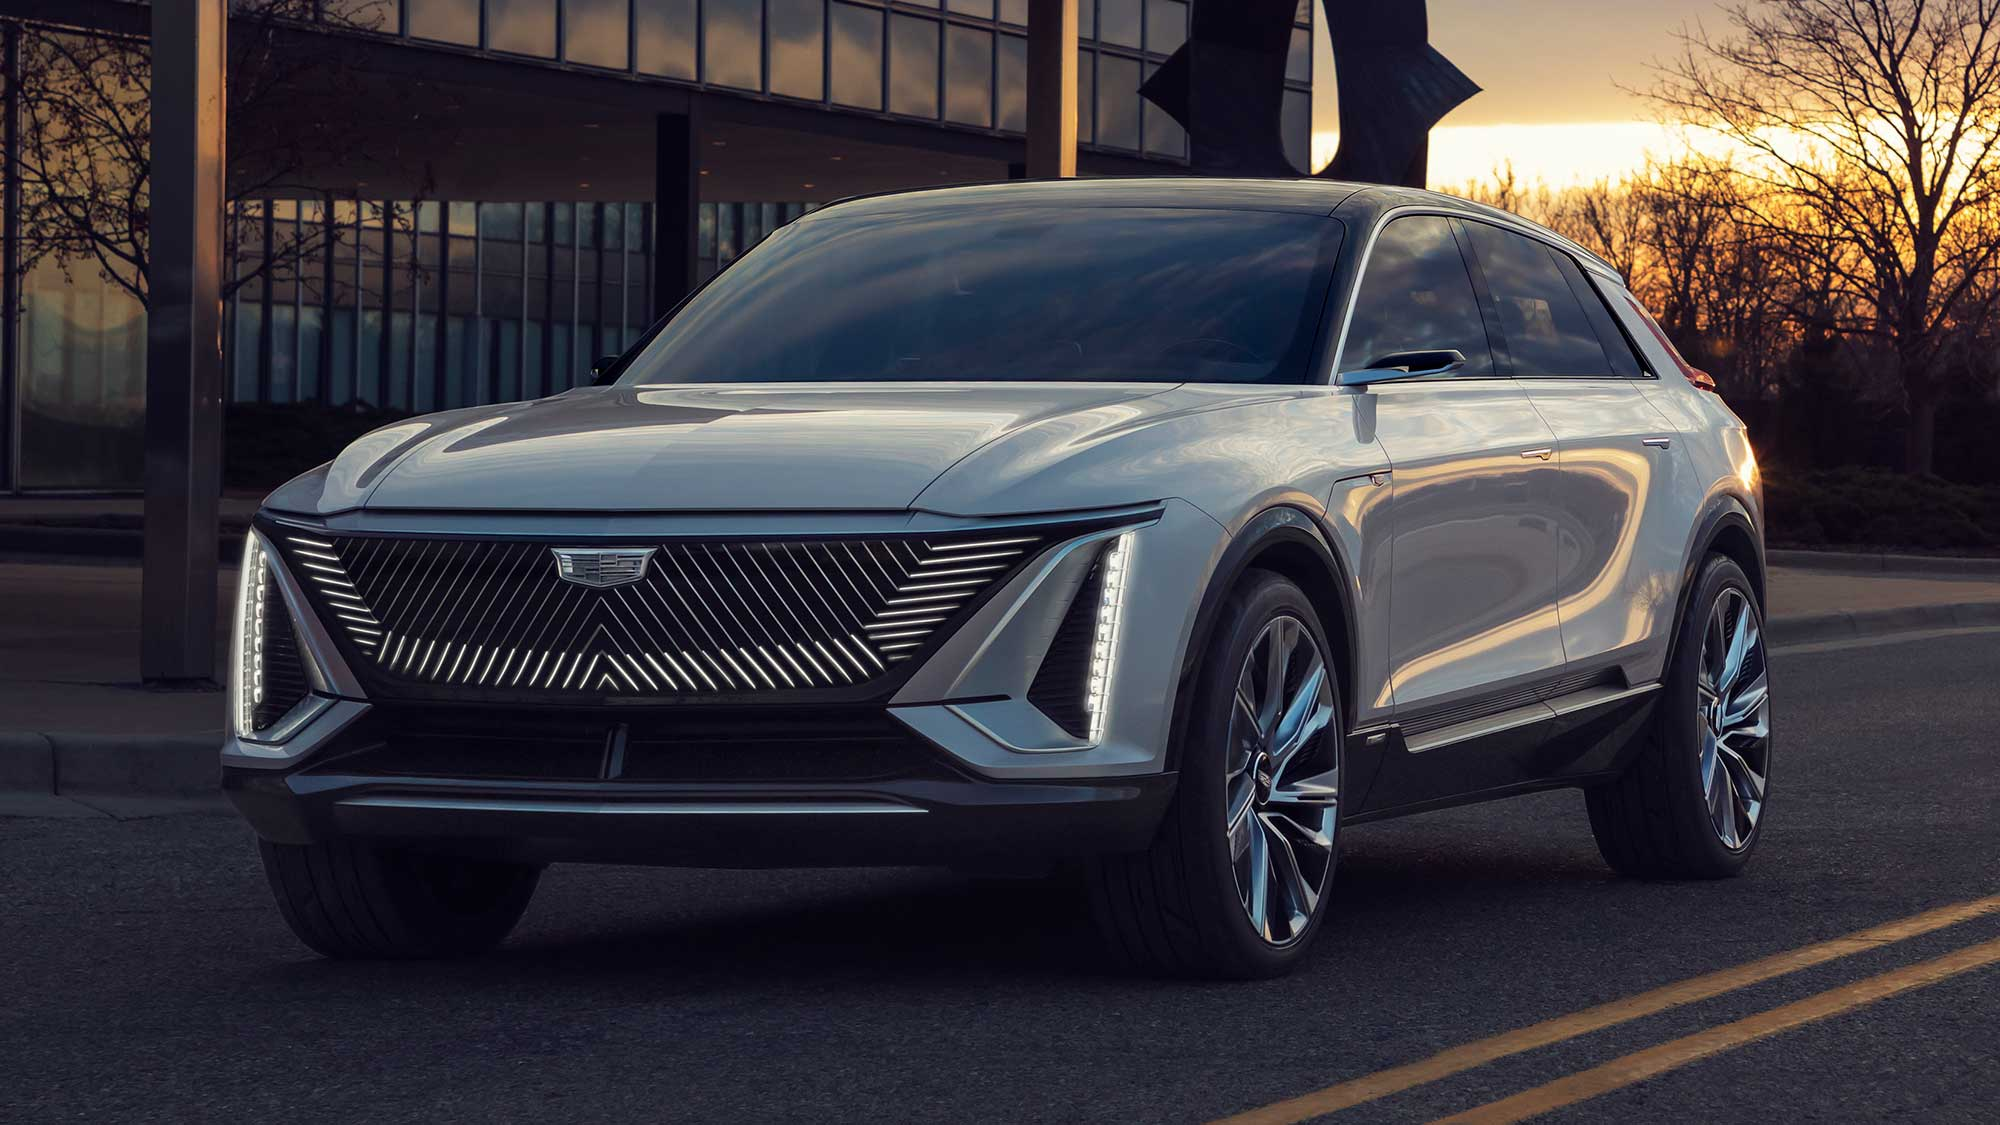 Lyriq Is Cadillac S Answer To Luxury Electric Suv With Over 300 Miles Range Shouts